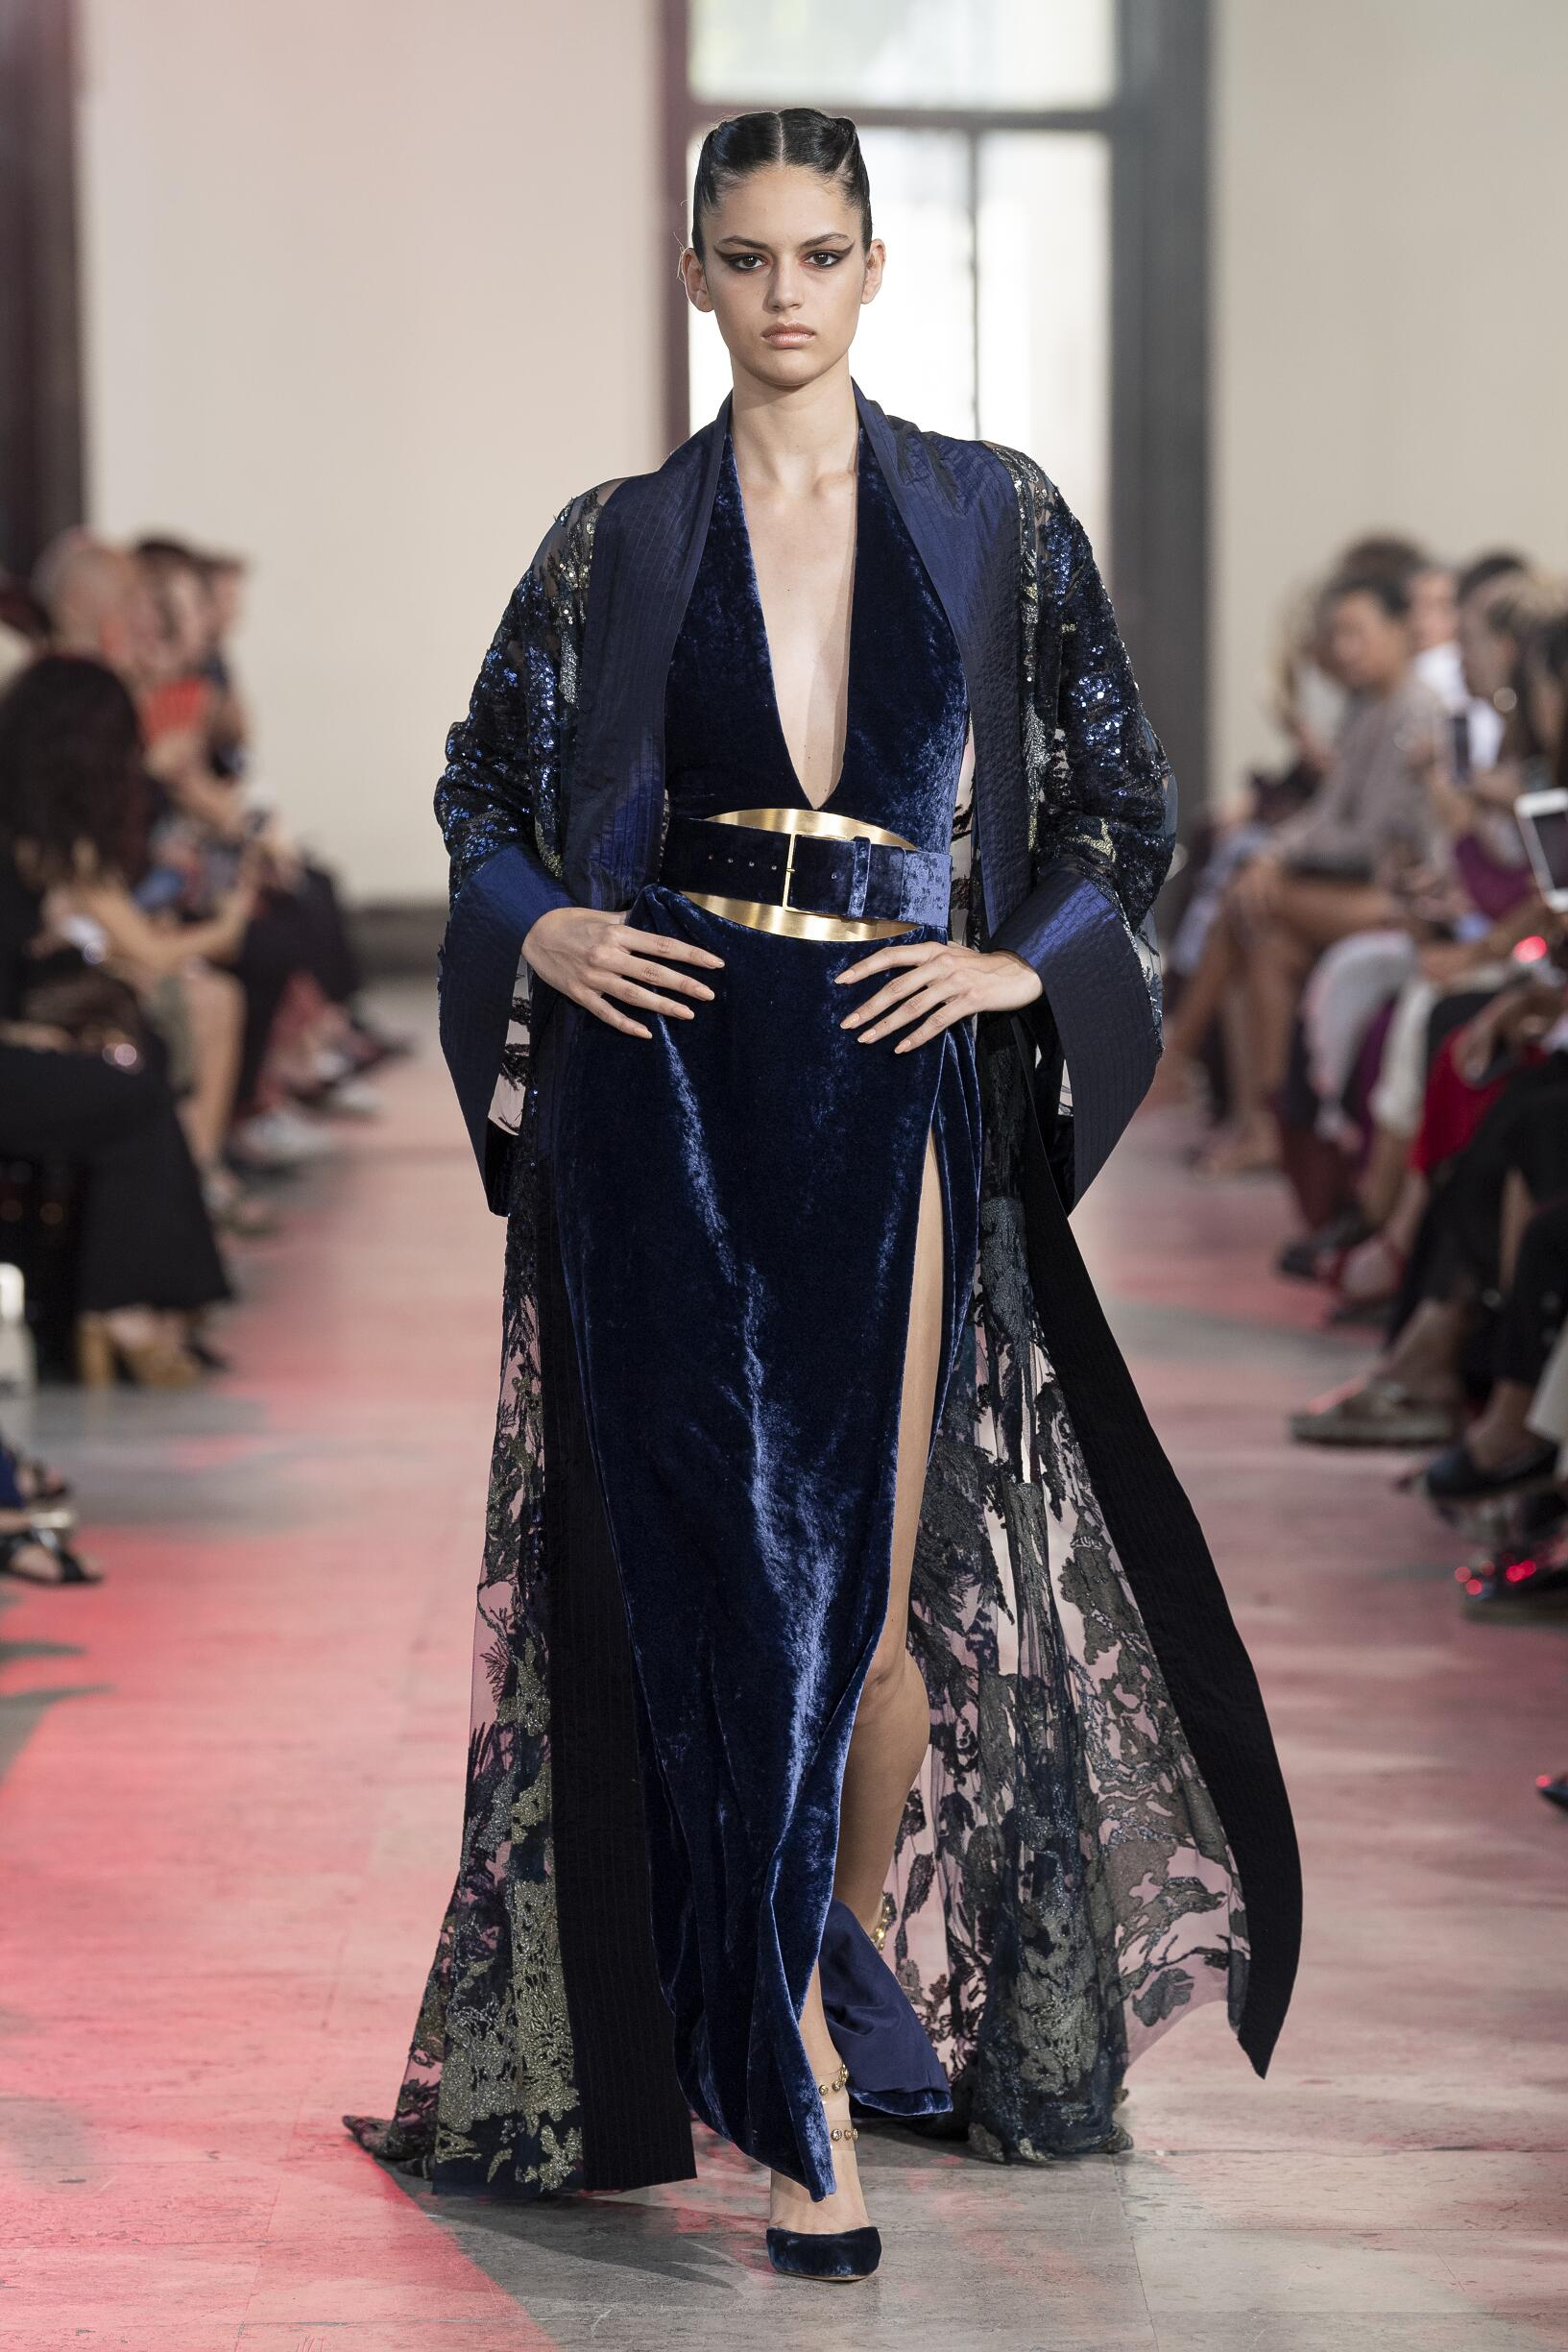 Elie Saab Haute Couture Fall Winter 2019-2020